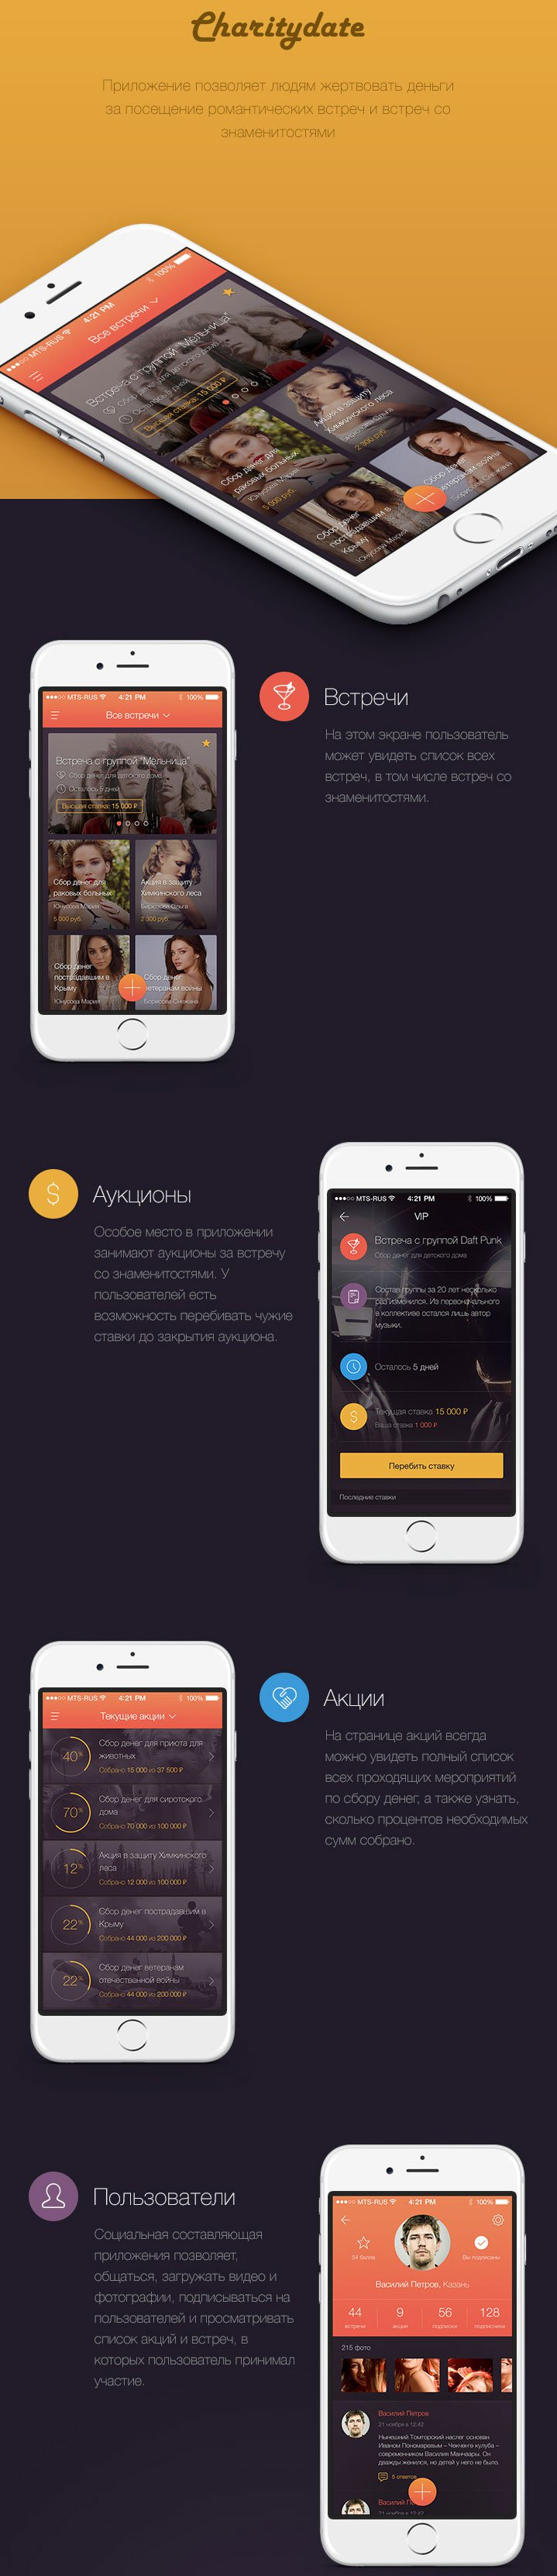 Pin on UI and UX